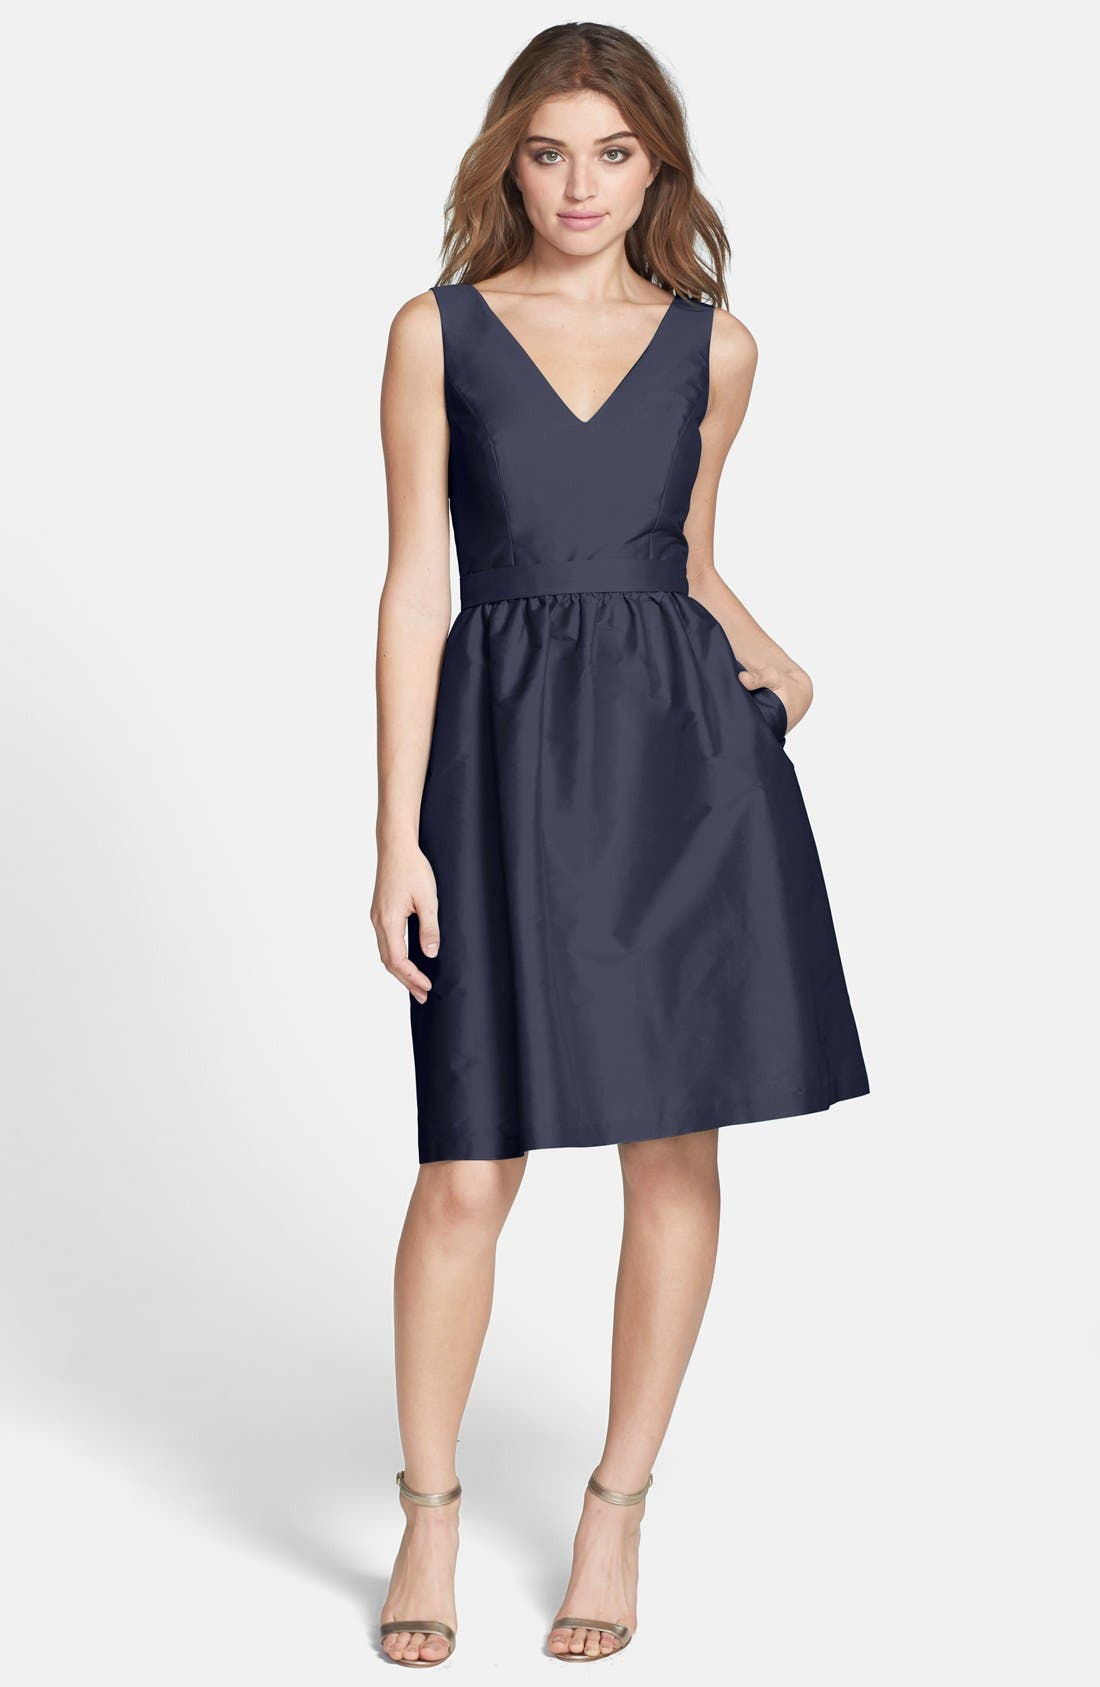 Main Image - Alfred Sung Satin Fit & Flare Dress Dress